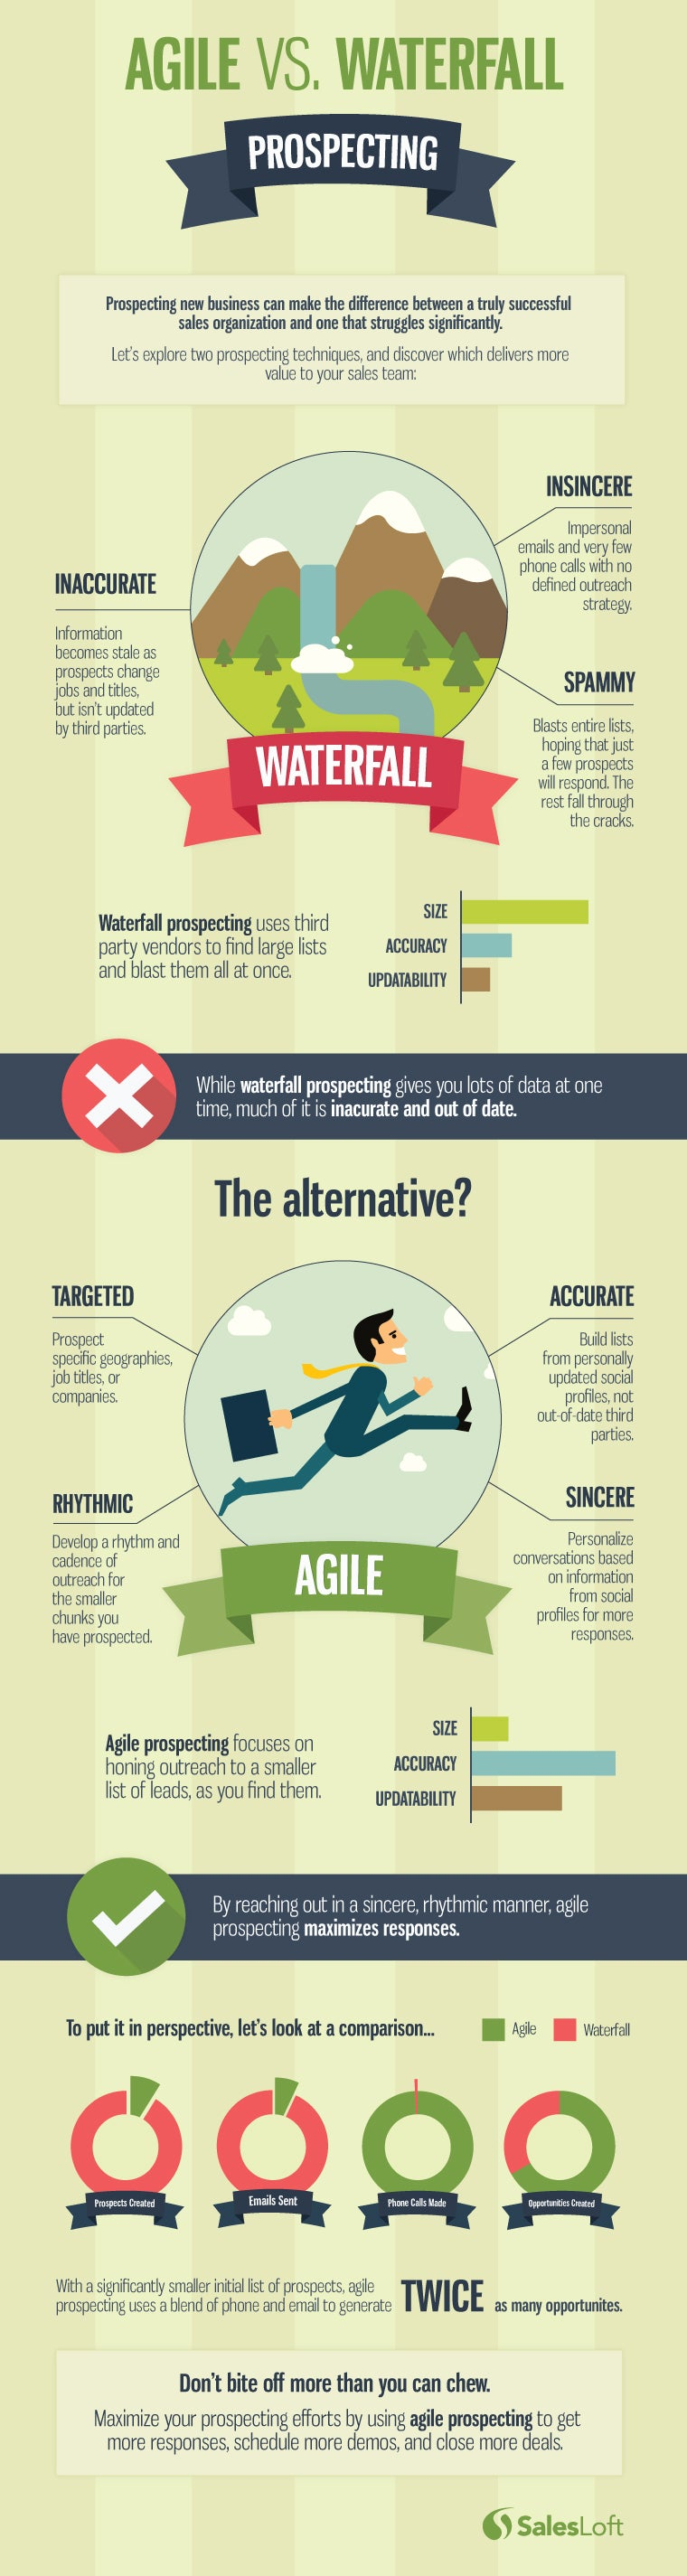 The best prospecting strategy for your business salesloft for Why agile methodology is better than waterfall